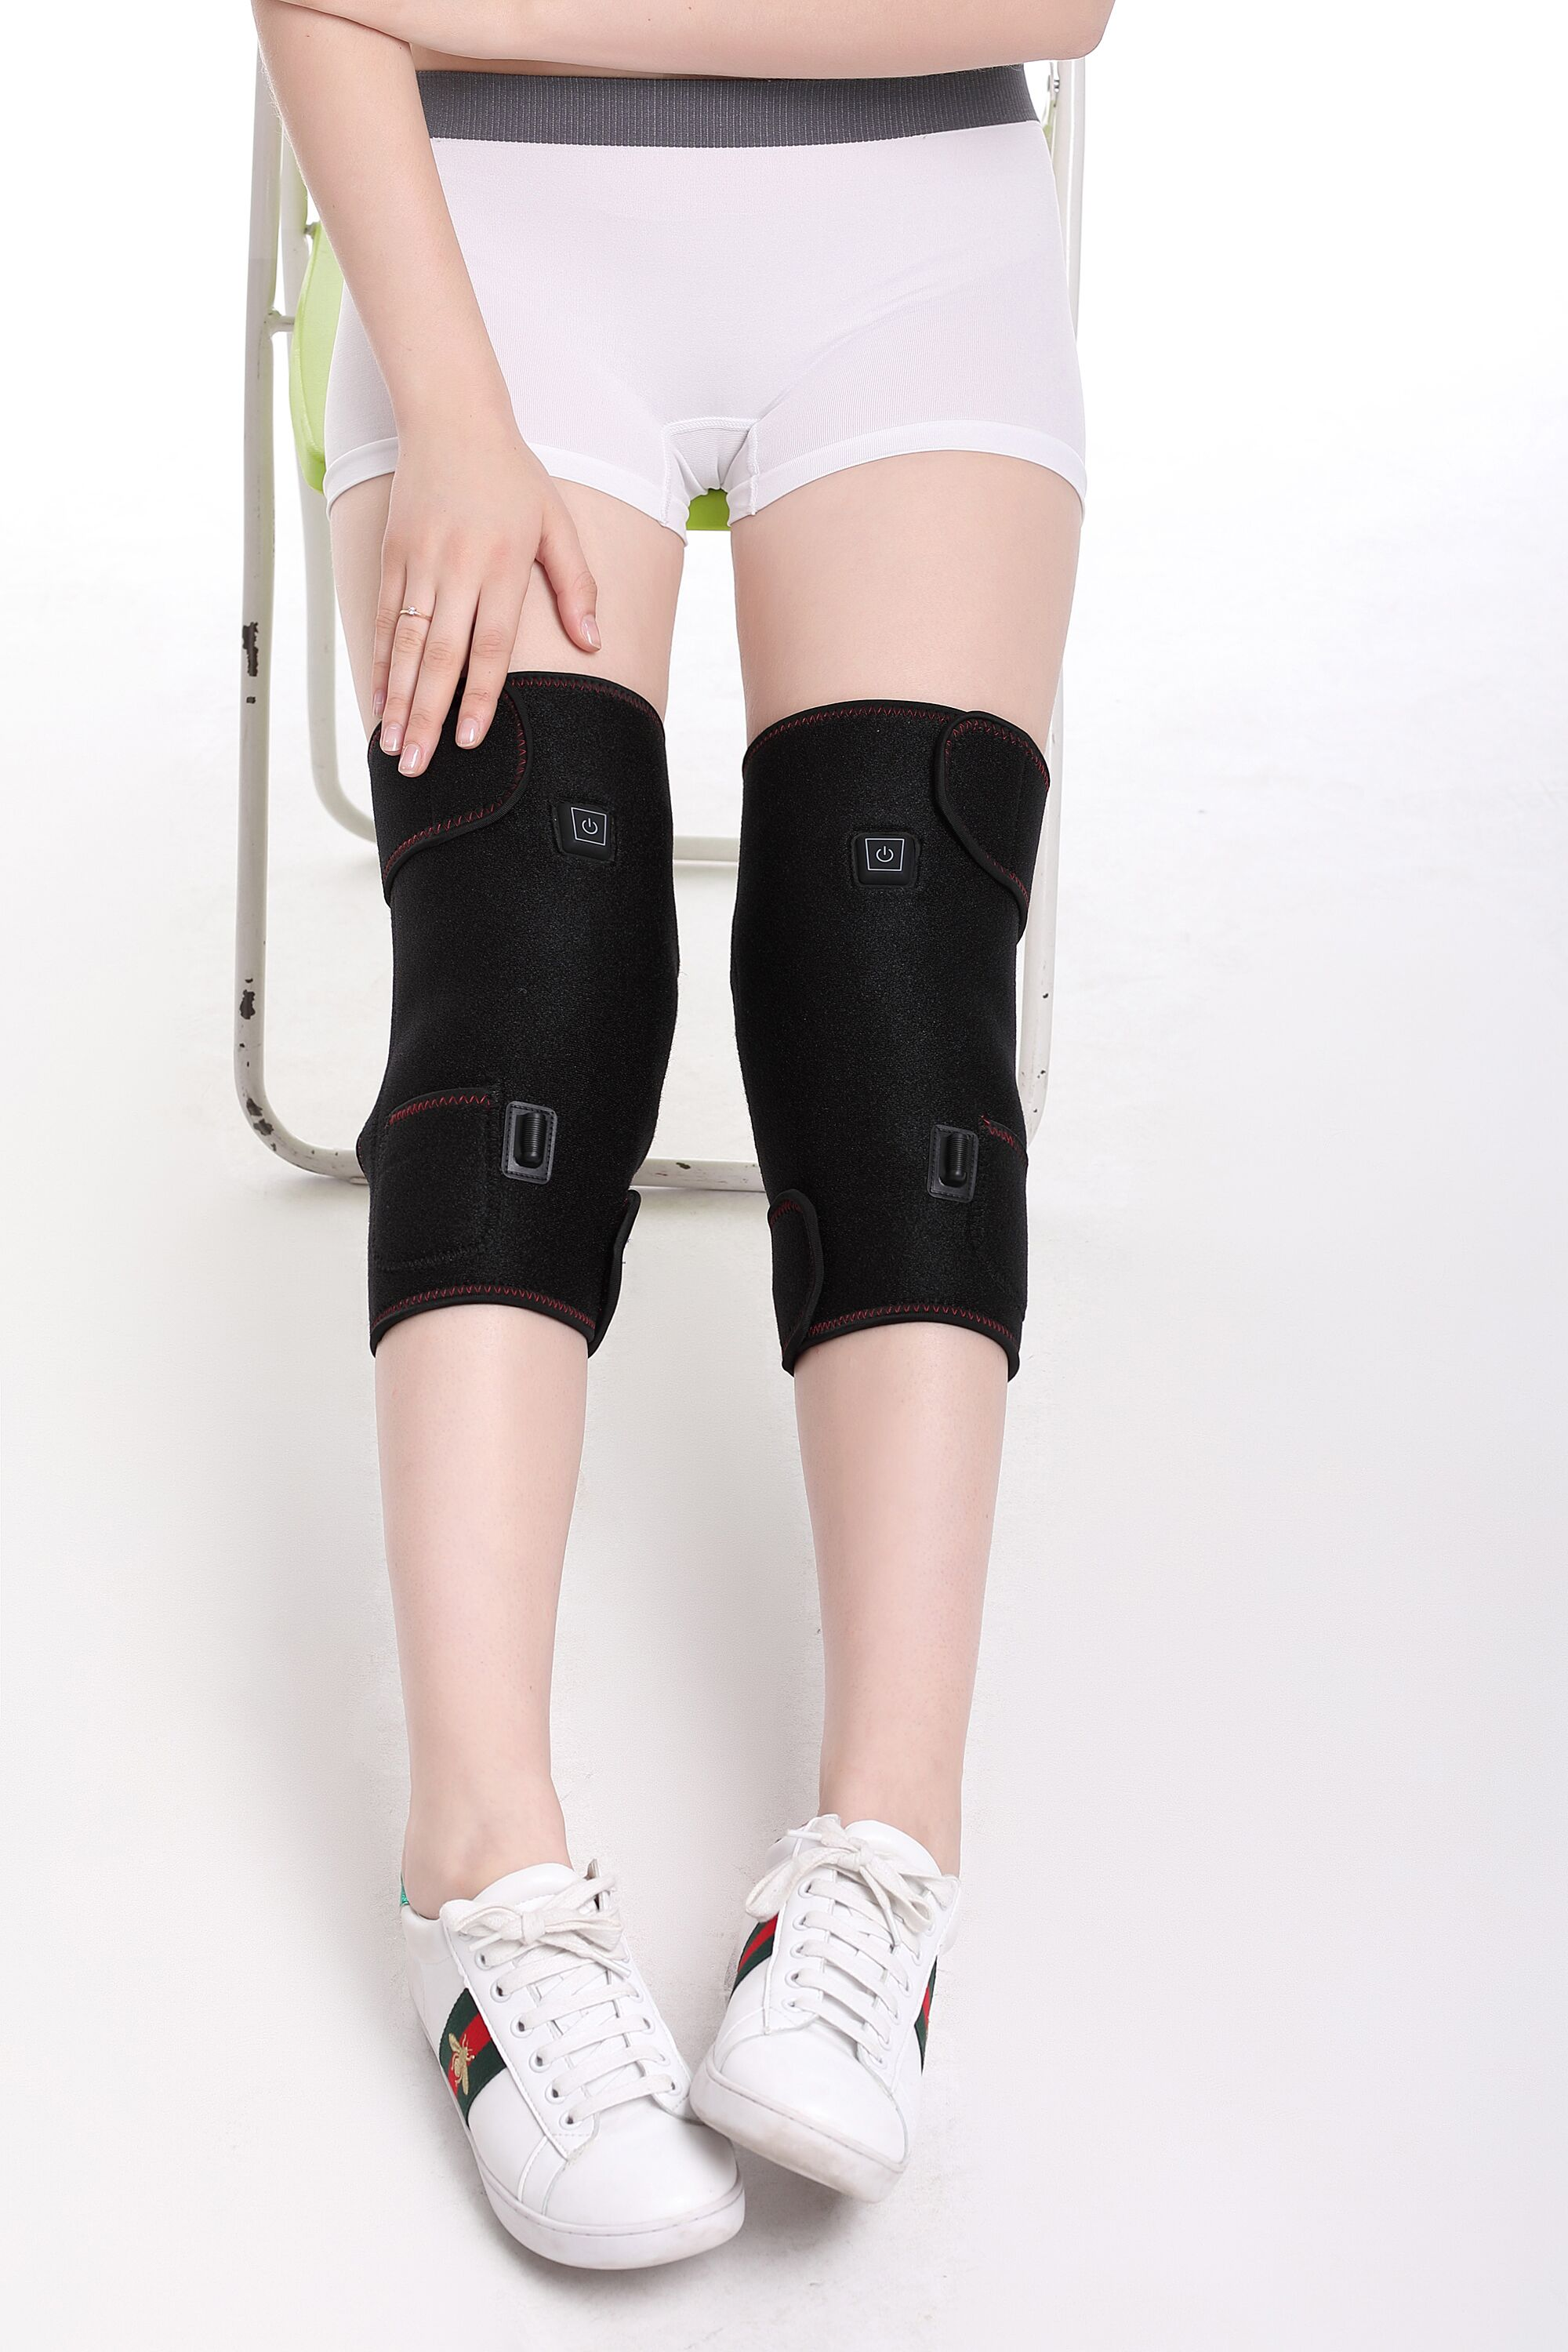 SM-H007A Softshell Thepray Electric Heated Knee Wrap